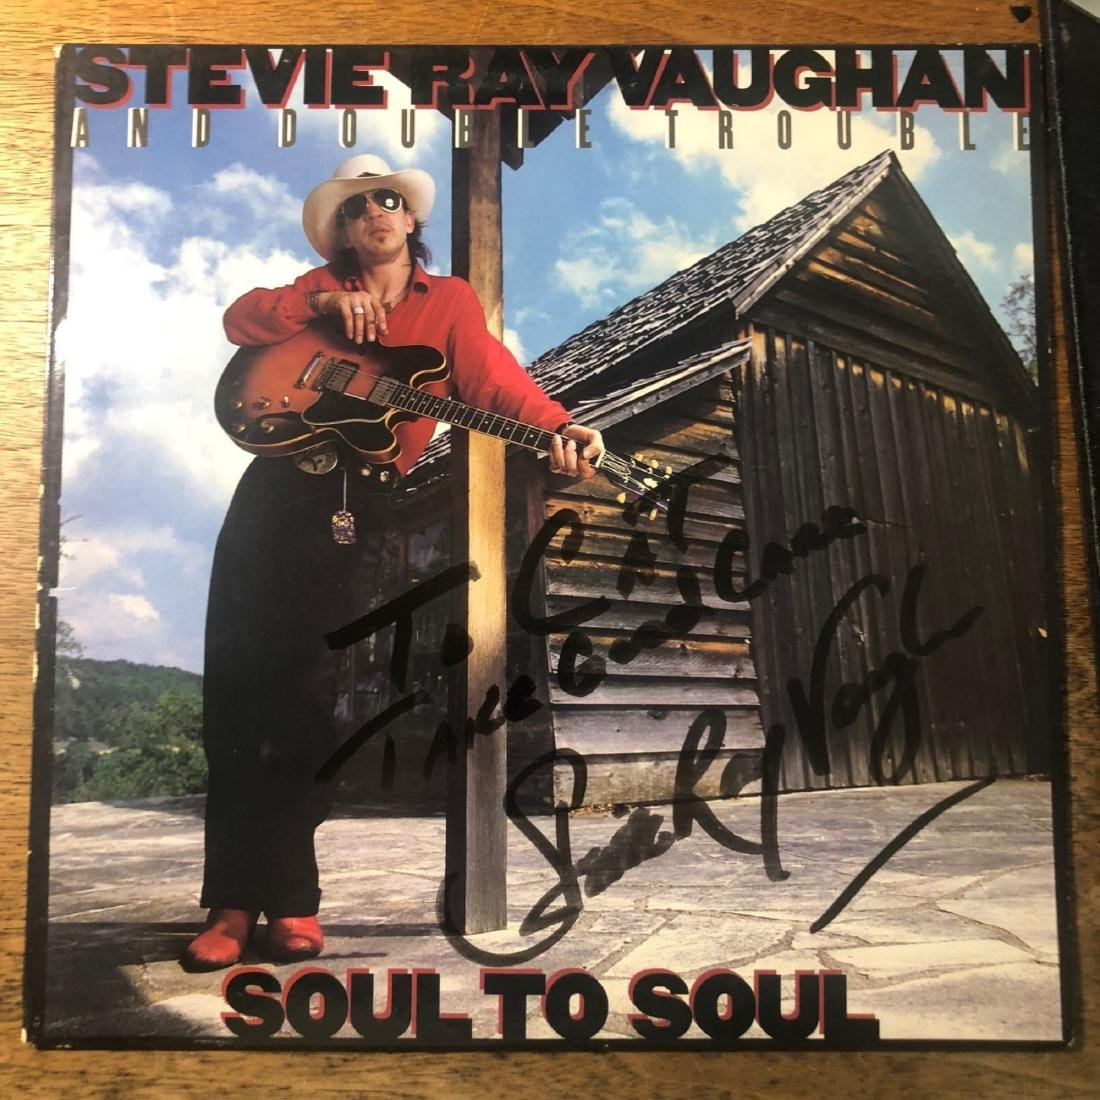 Signed Stevie Ray Vaughan Soul To Soul Album